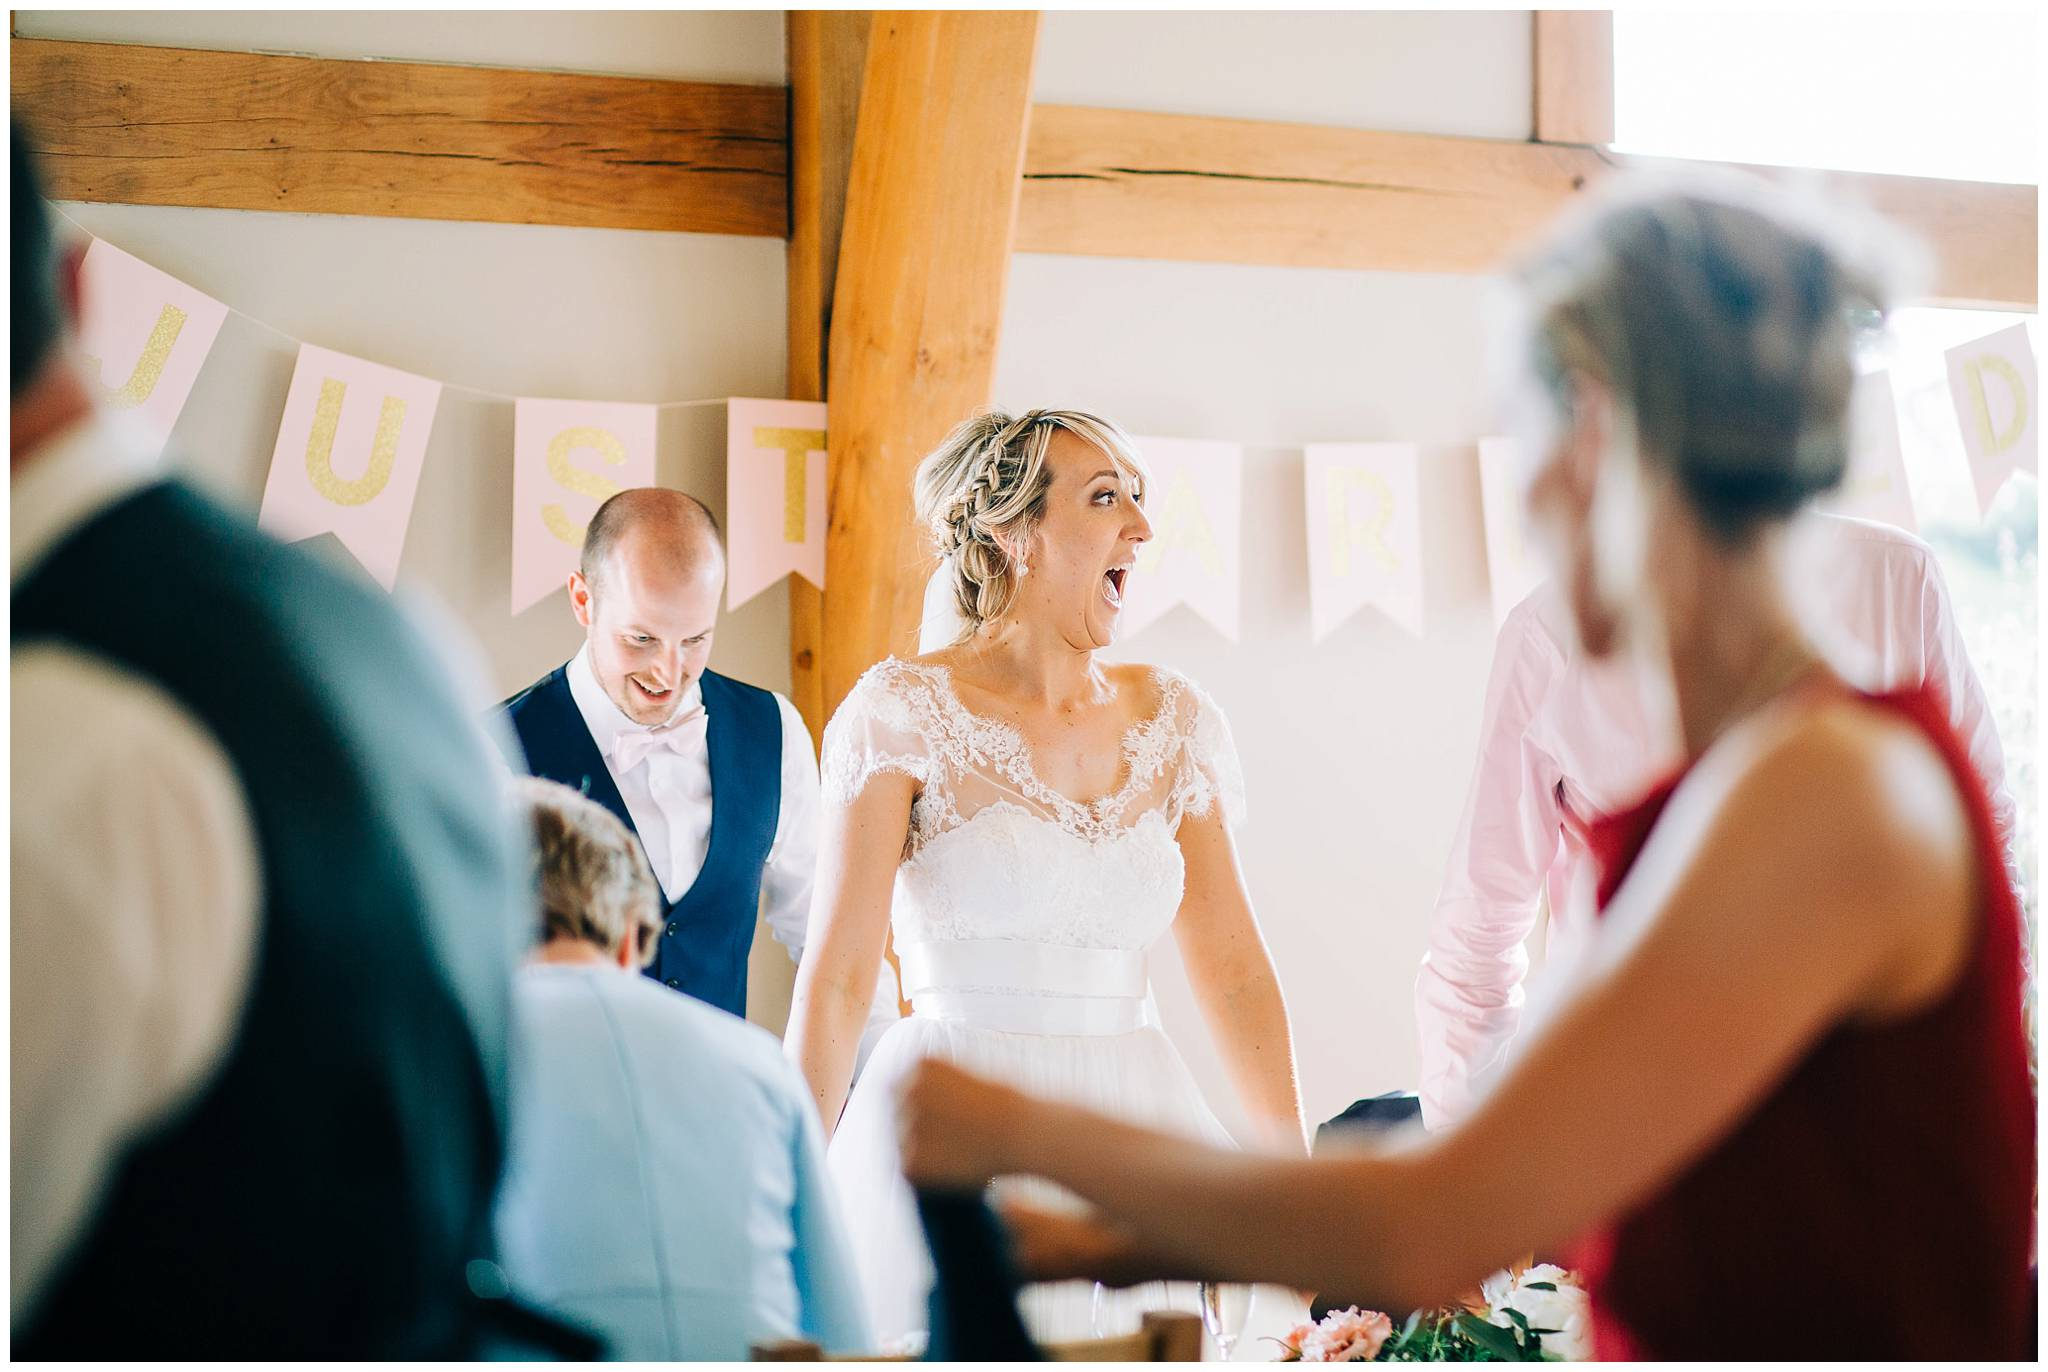 bride is smiling at everyone at the wedding breakfast before she sits down